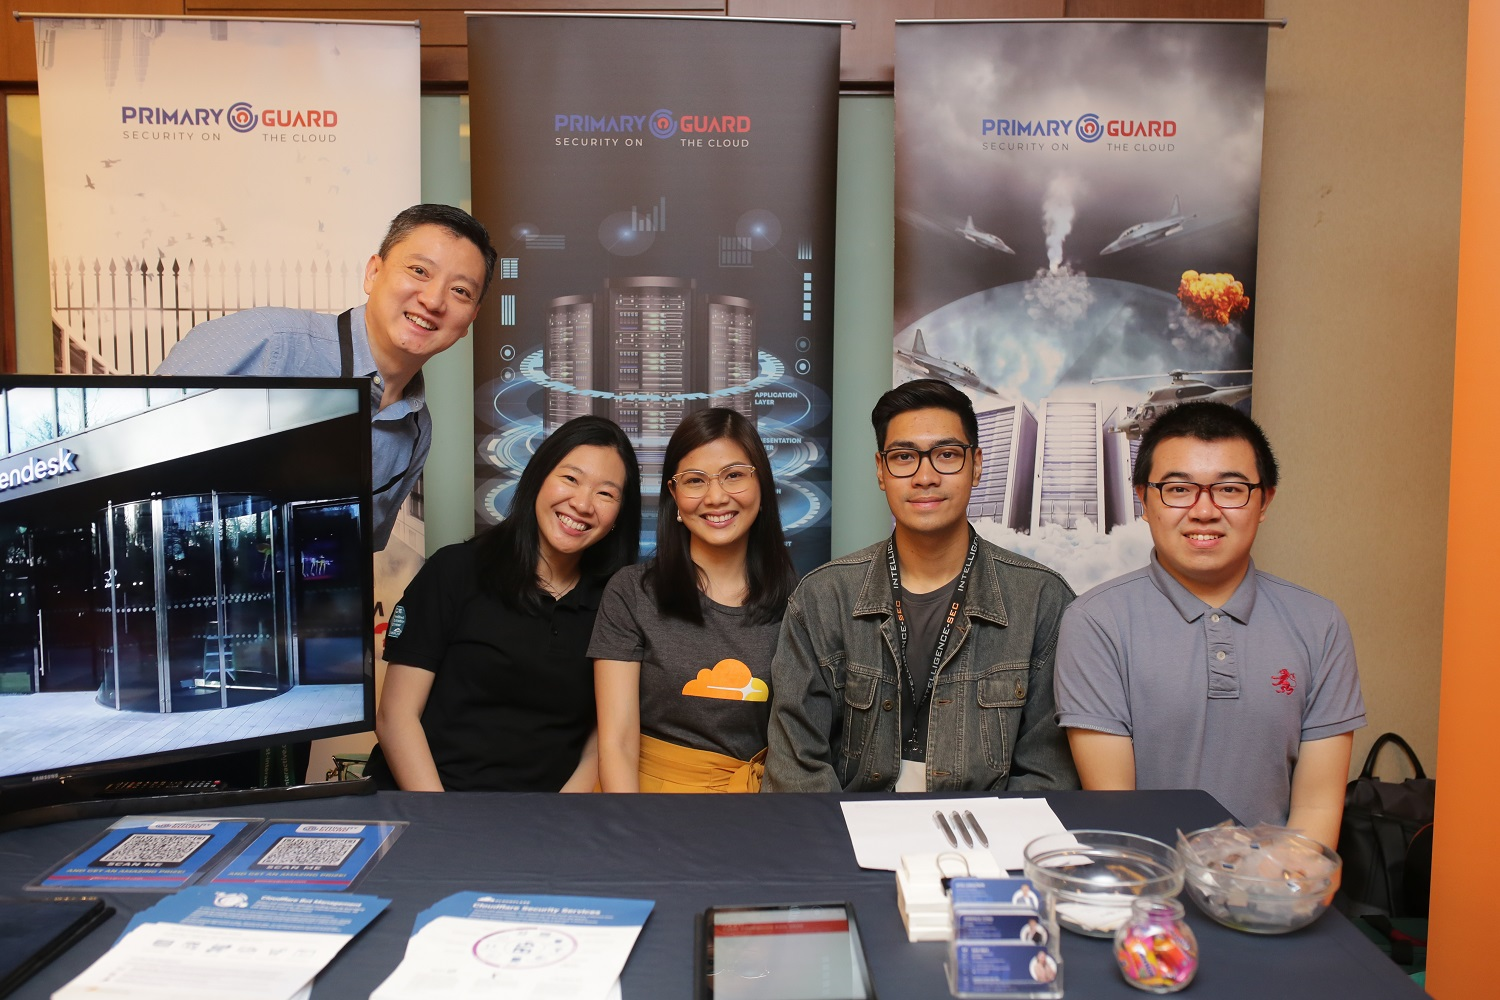 Primary Guard and Cloudflare Share IR 4.0 Cyber Trends and Threats at Cyber Intelligence Asia 2020